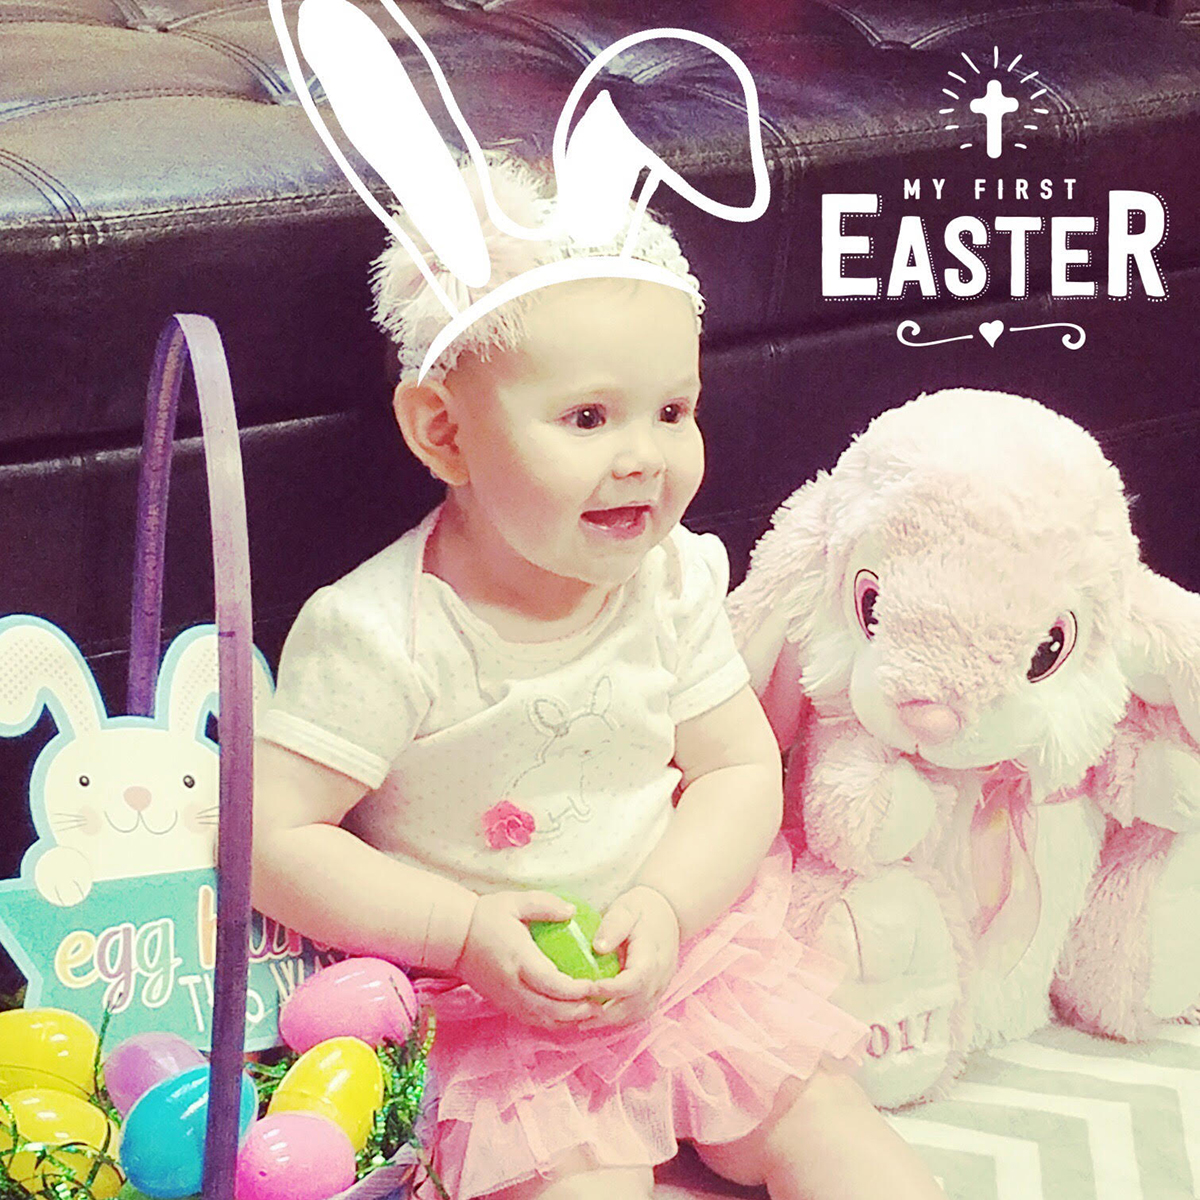 Baby Easter photo